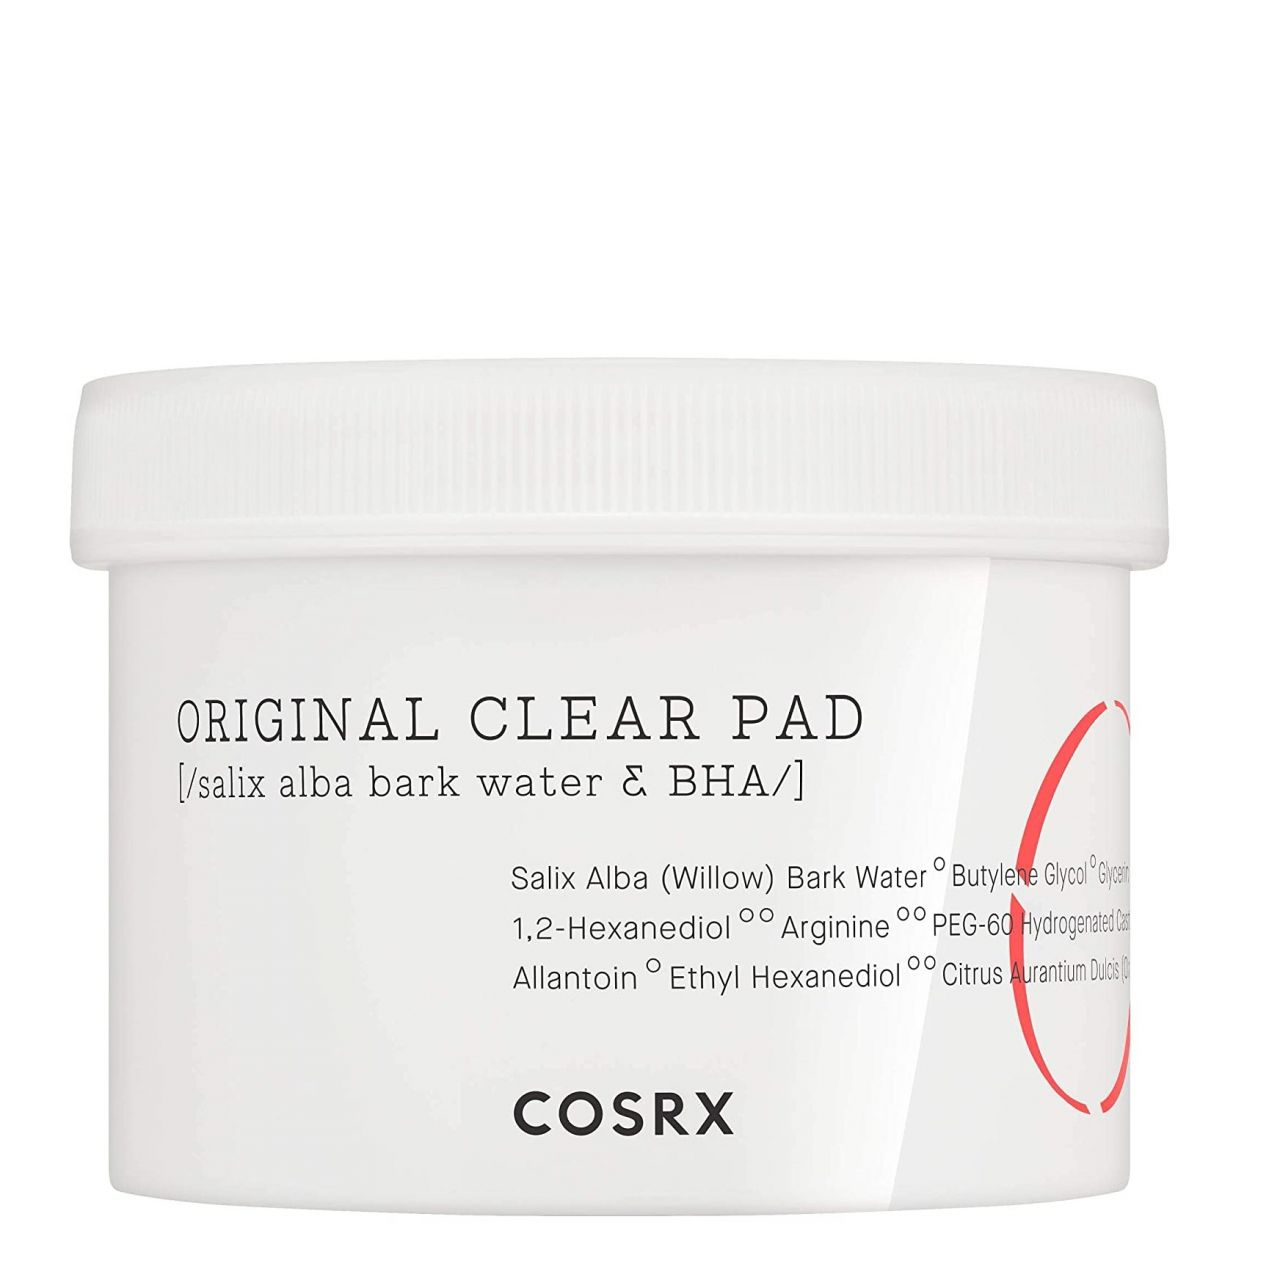 Очищающие пады с BHA-кислотой COSRX One Step Original Clear Pad (70 шт)